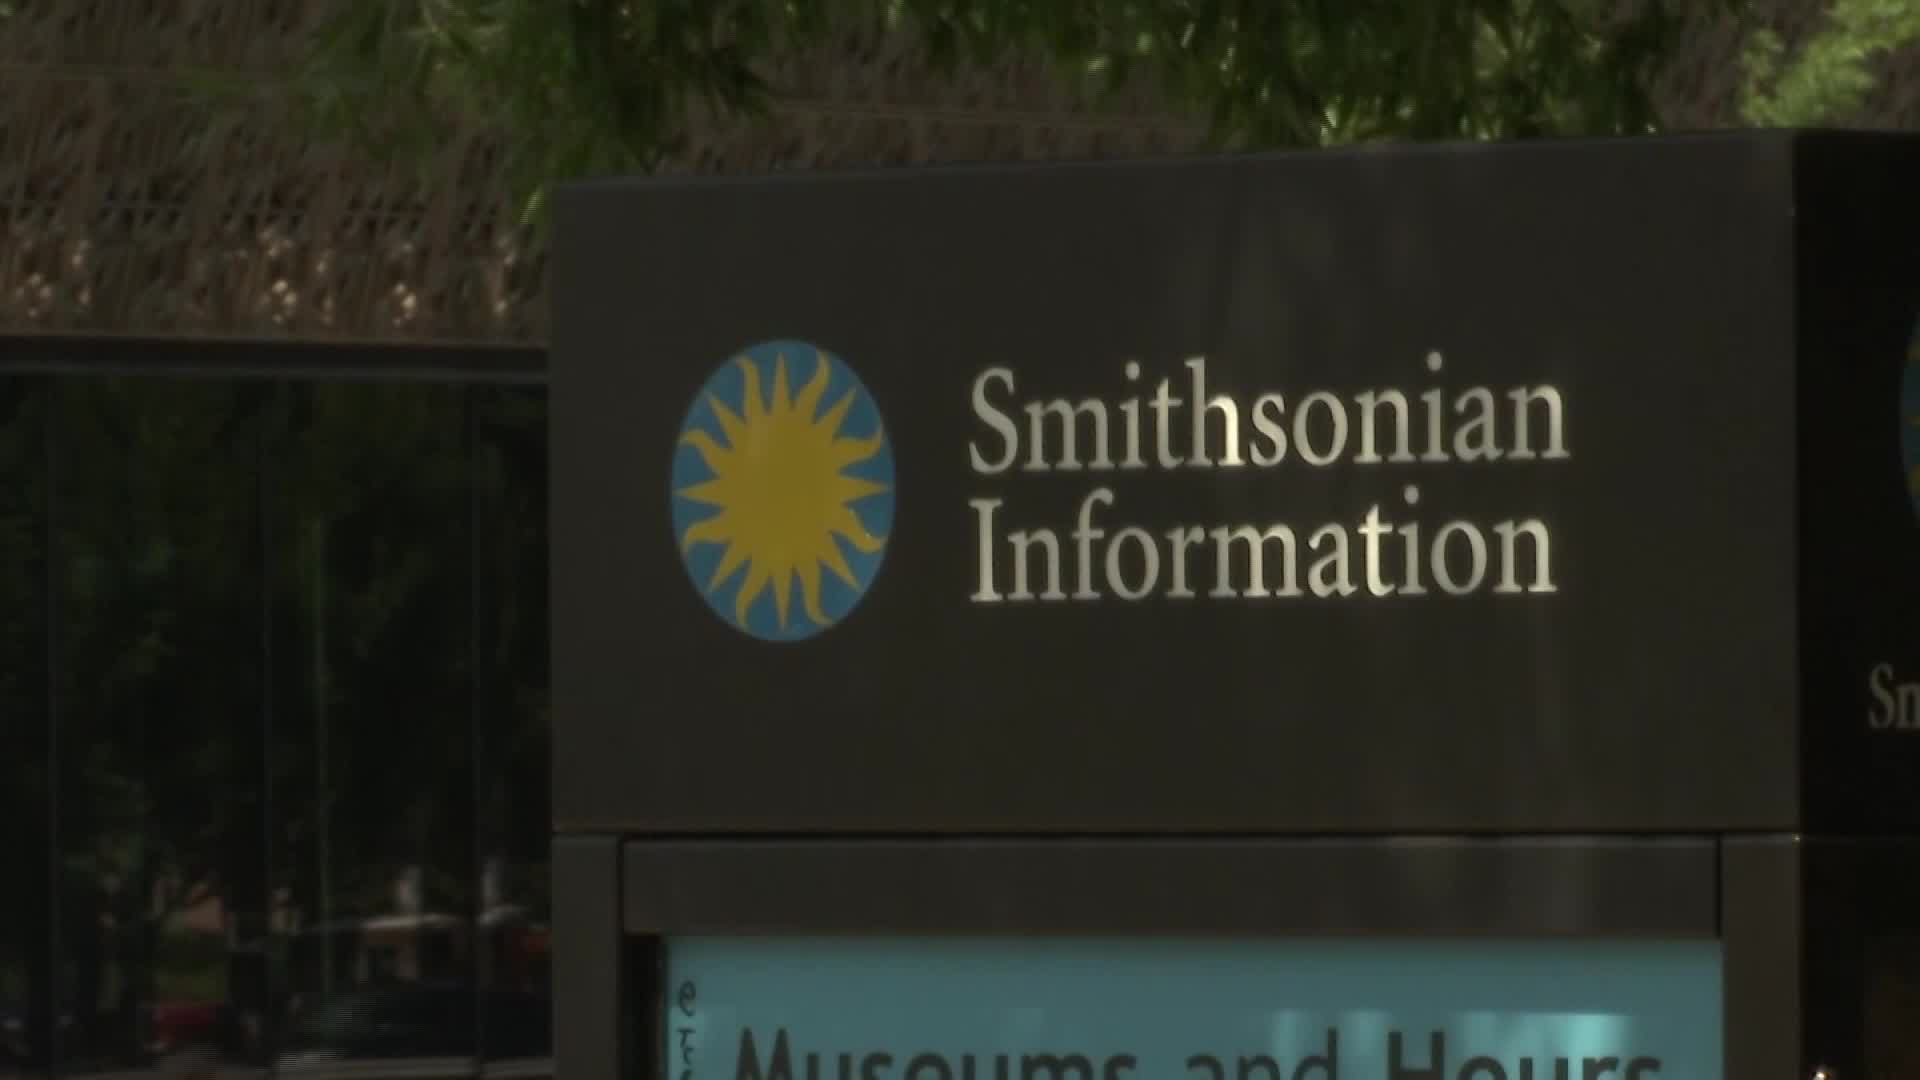 smithsonian information